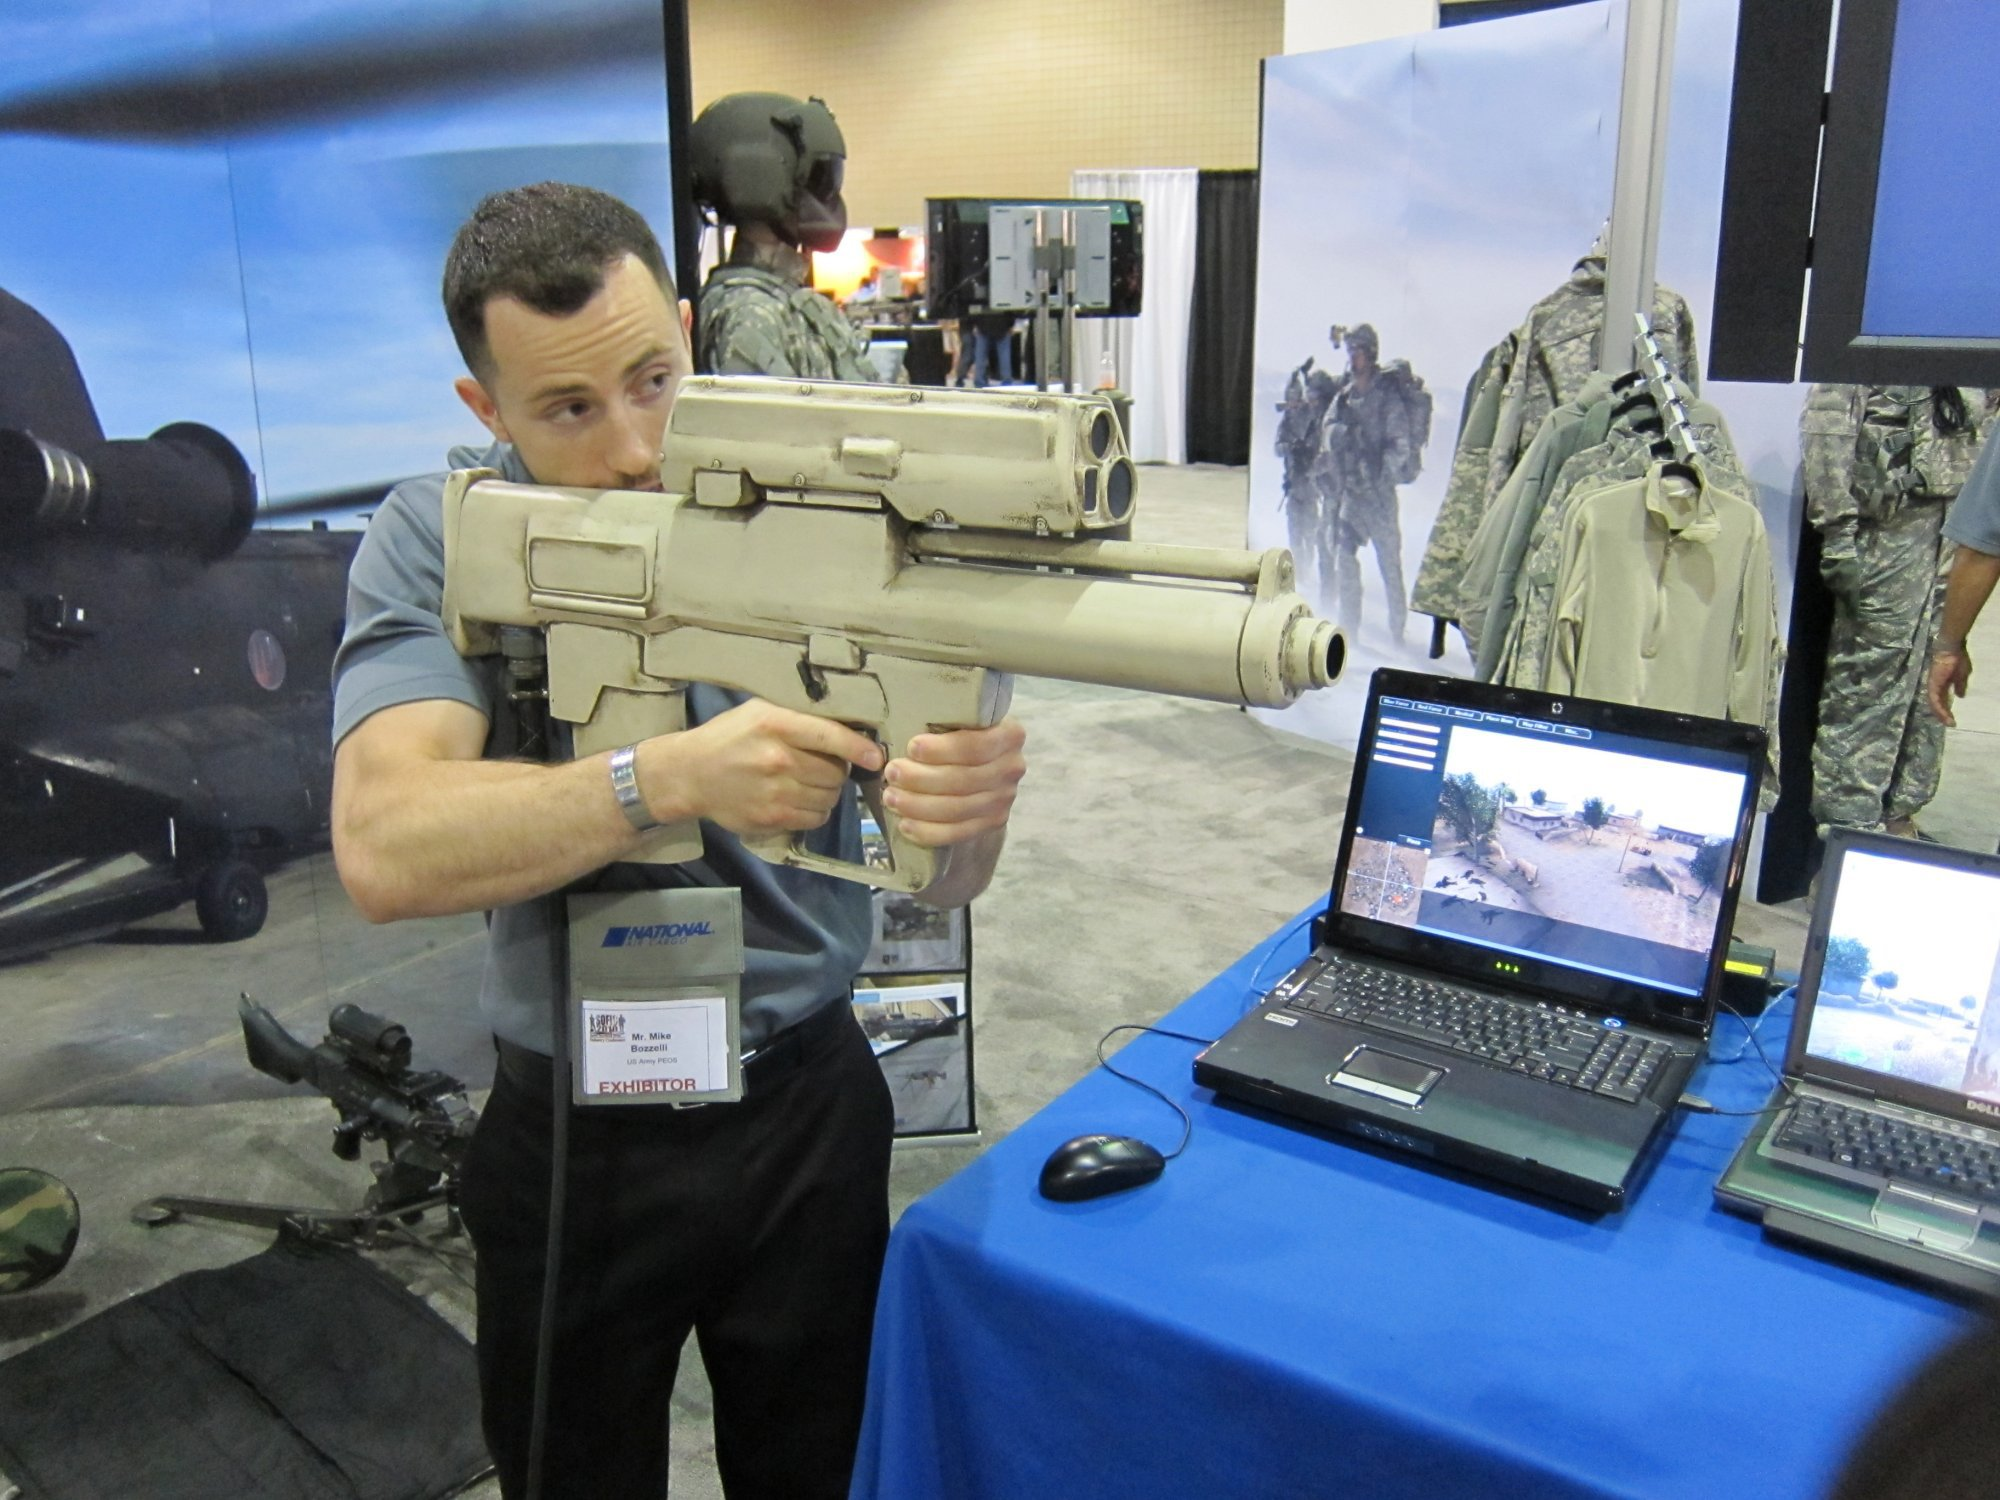 ATK XM25 Auto 25mm Grenade Launcher Weapon Simulator System SOFIC 2010 3 <!  :en  >ATK XM25 Game Changer Semi Auto 25mm Airburst Grenade Launcher/Individual Airburst Weapon System (IAWS) Goes to Combat: DR Provides the Cool Skinny on this Potentially Revolutionary Infantry Weapon System.<!  :  >